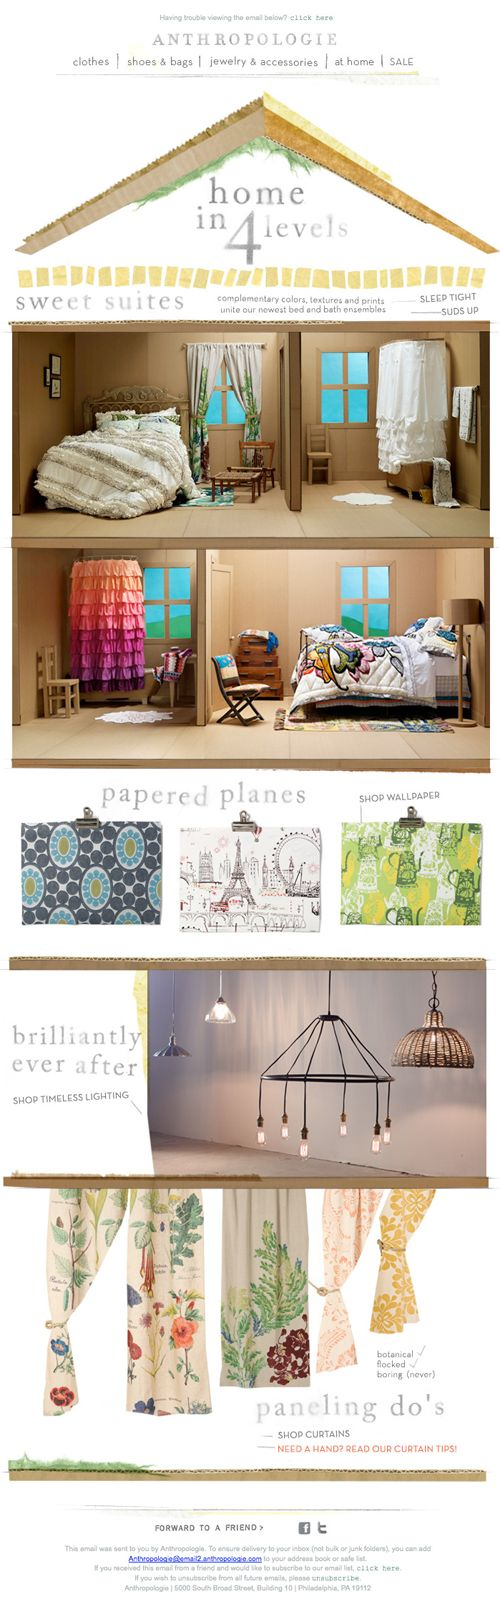 Anthropologie Home email design